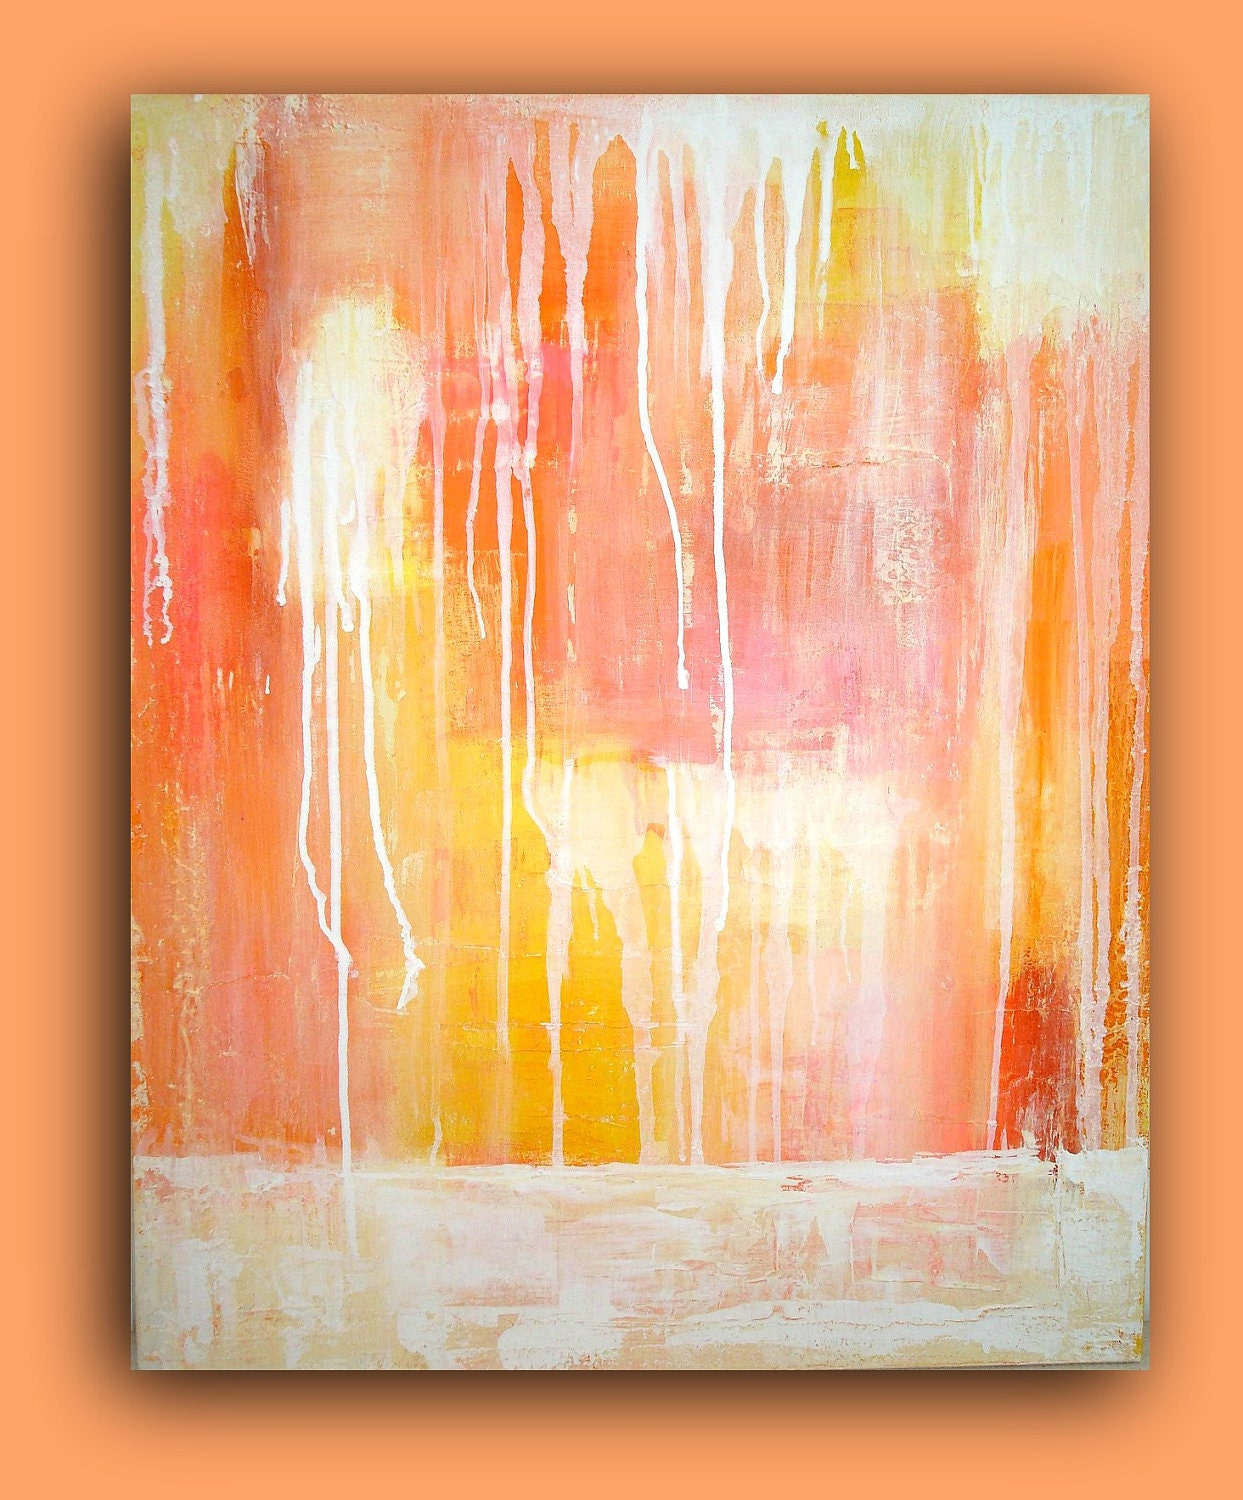 Painting coral abstract painting original acrylic art textured for Textured acrylic abstract paintings